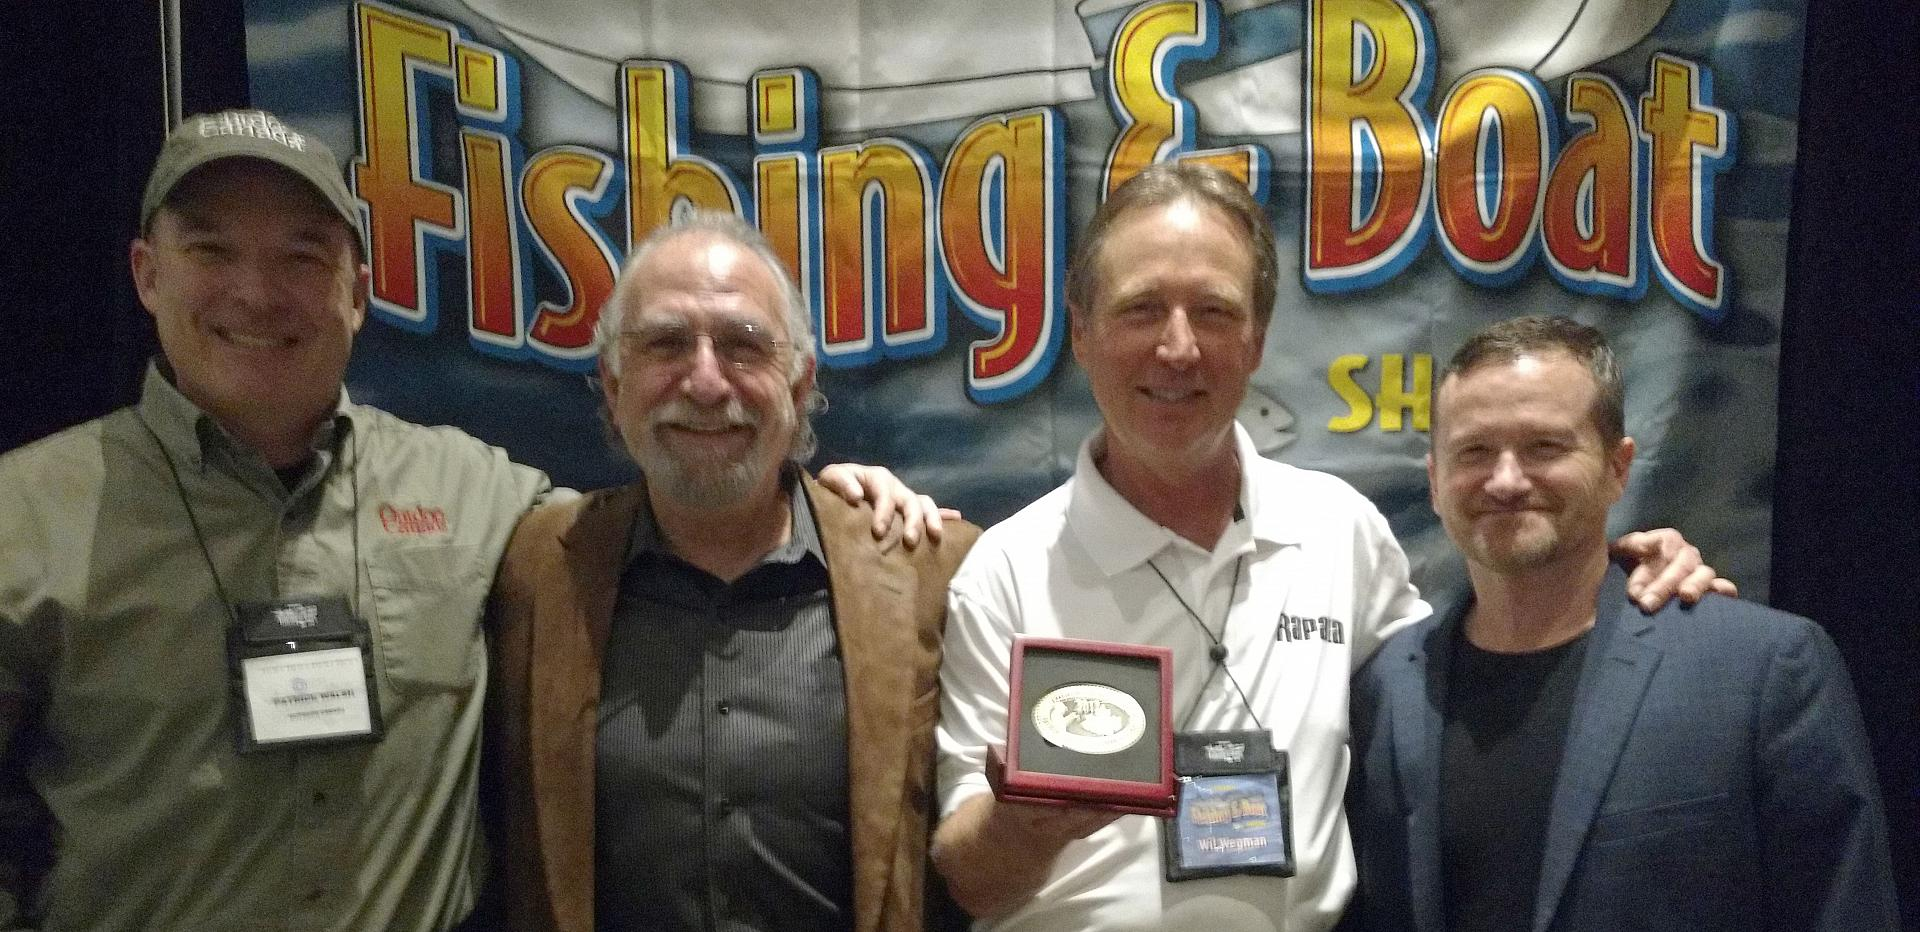 This year's inductee into the Canadian Angler Hall of Fame, Wil Wegman (2nd right) with (right to left) Fish'n Canada's Pete Bowman and Angelo Viola, and Outdoor Canada's Patrick Walsh